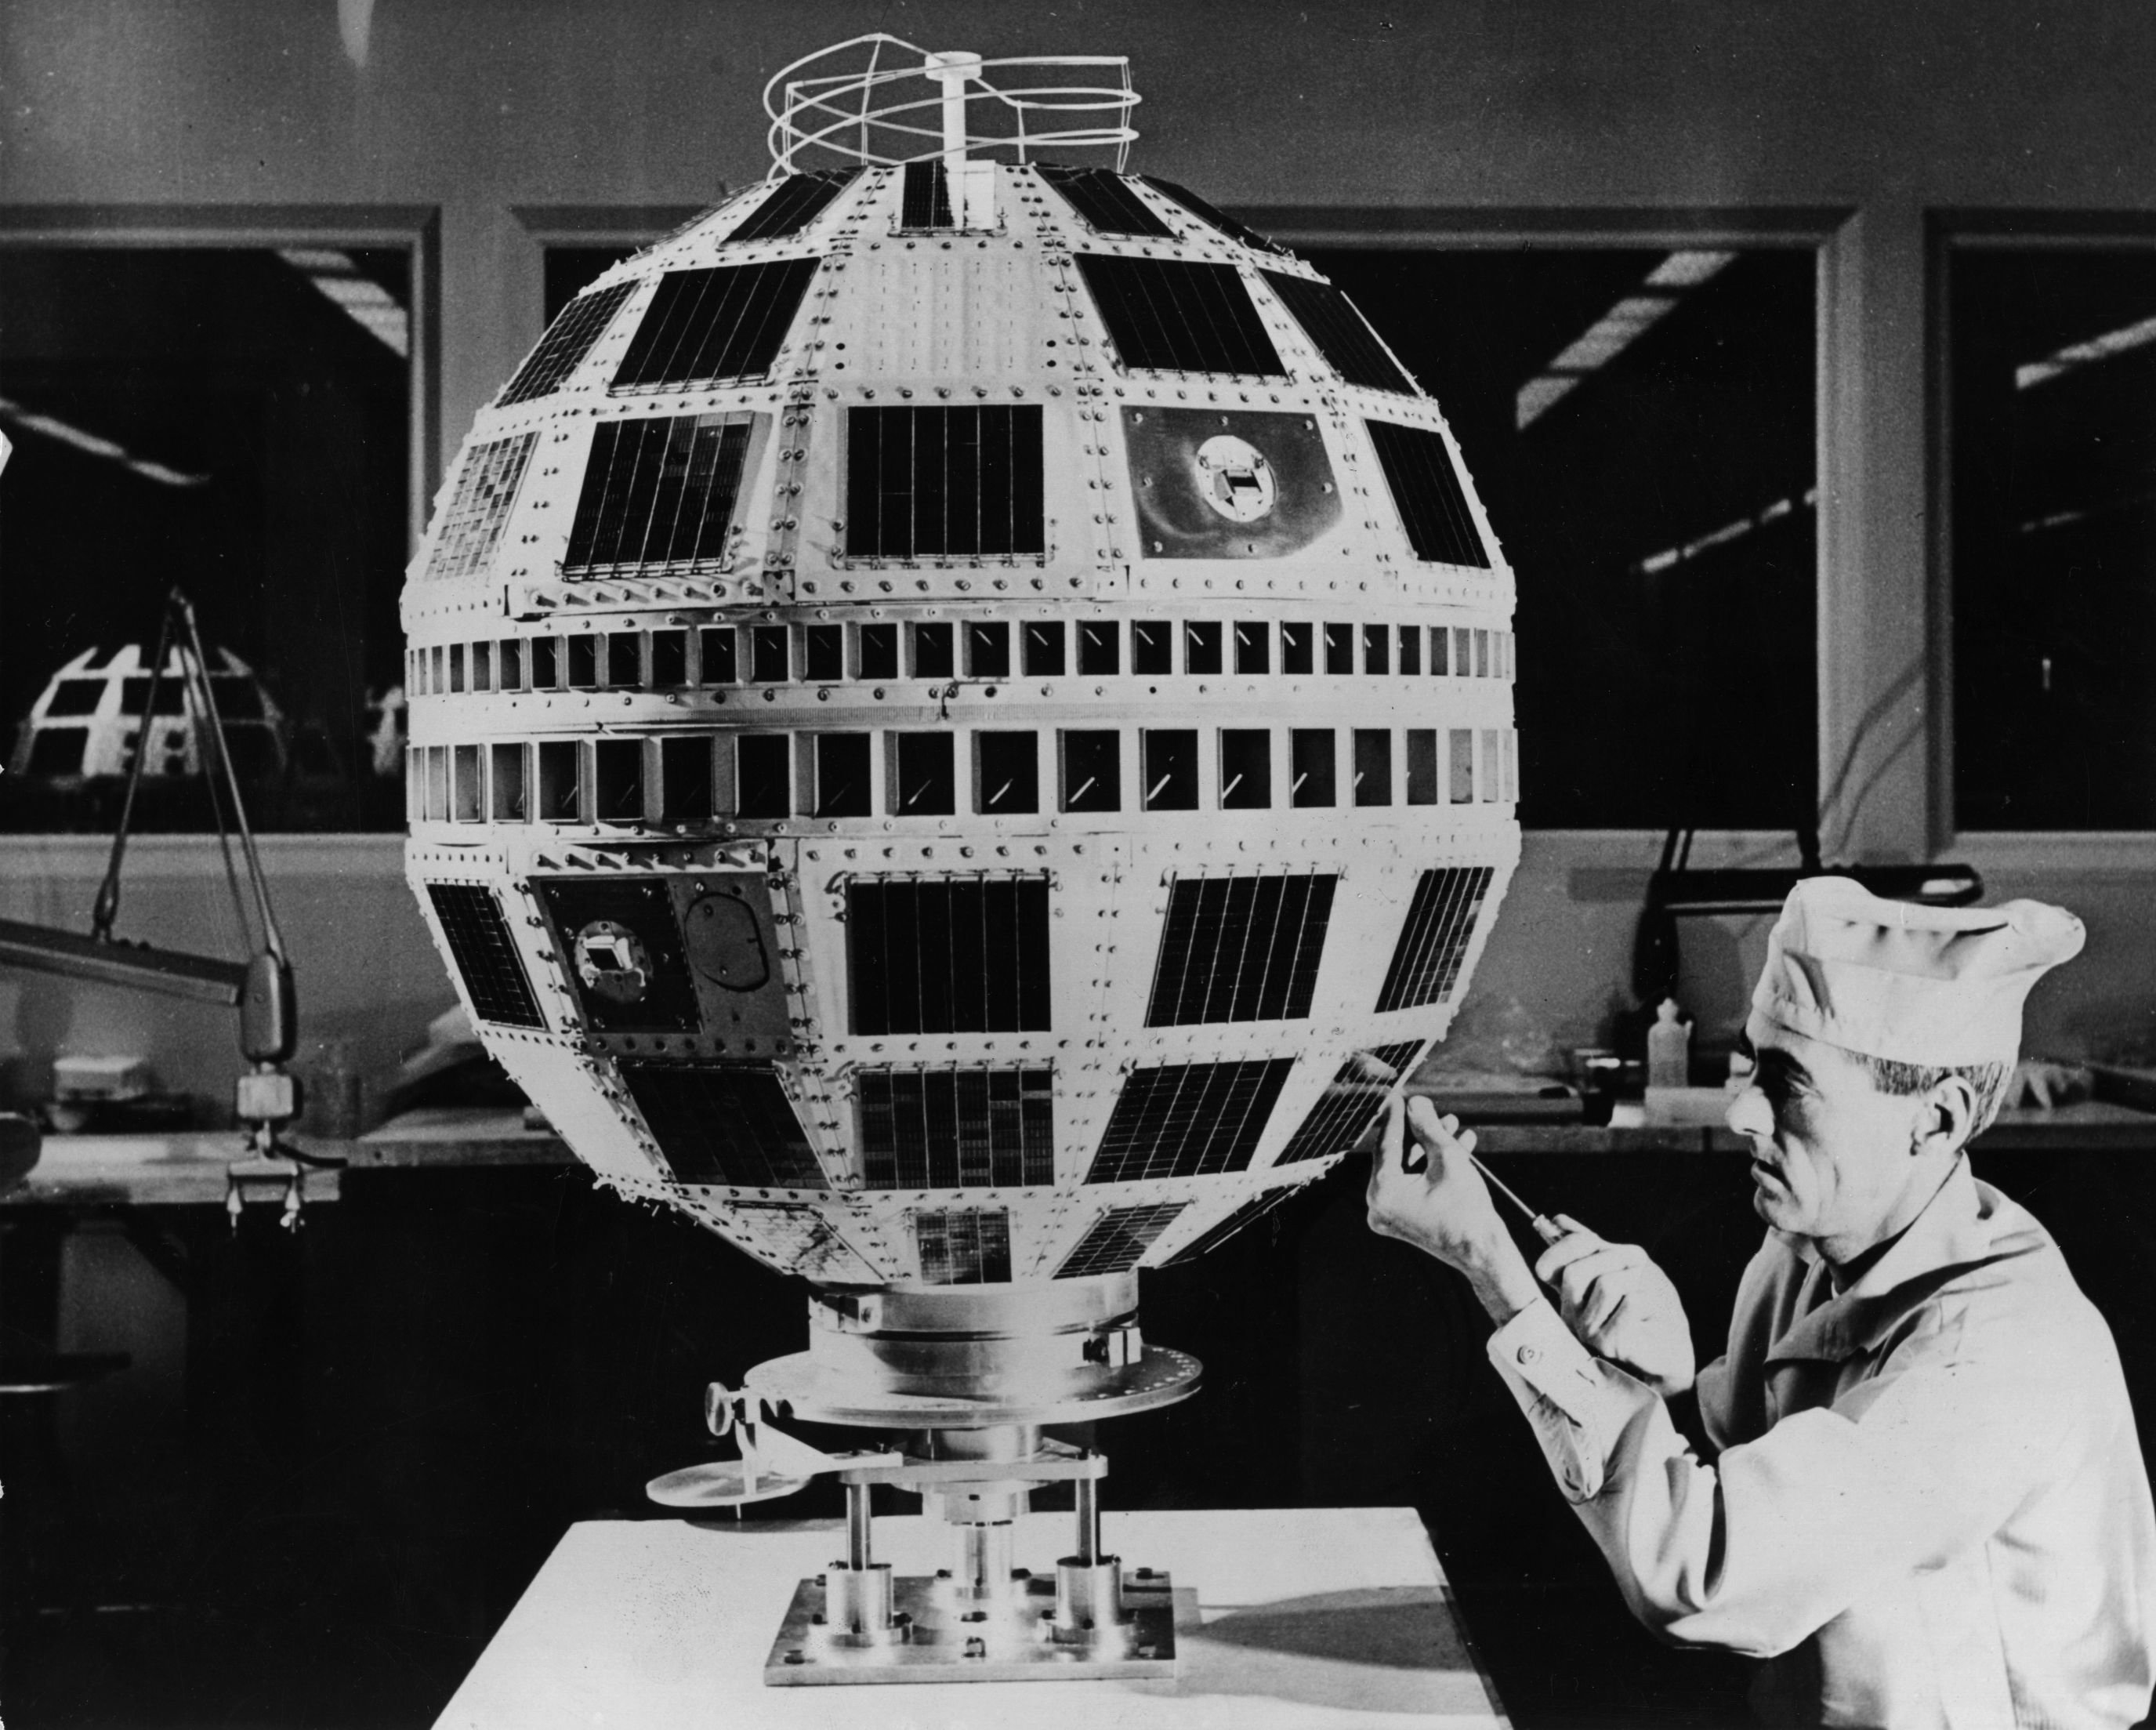 from transistors to telstar, idea factory traces bell labs' legacy